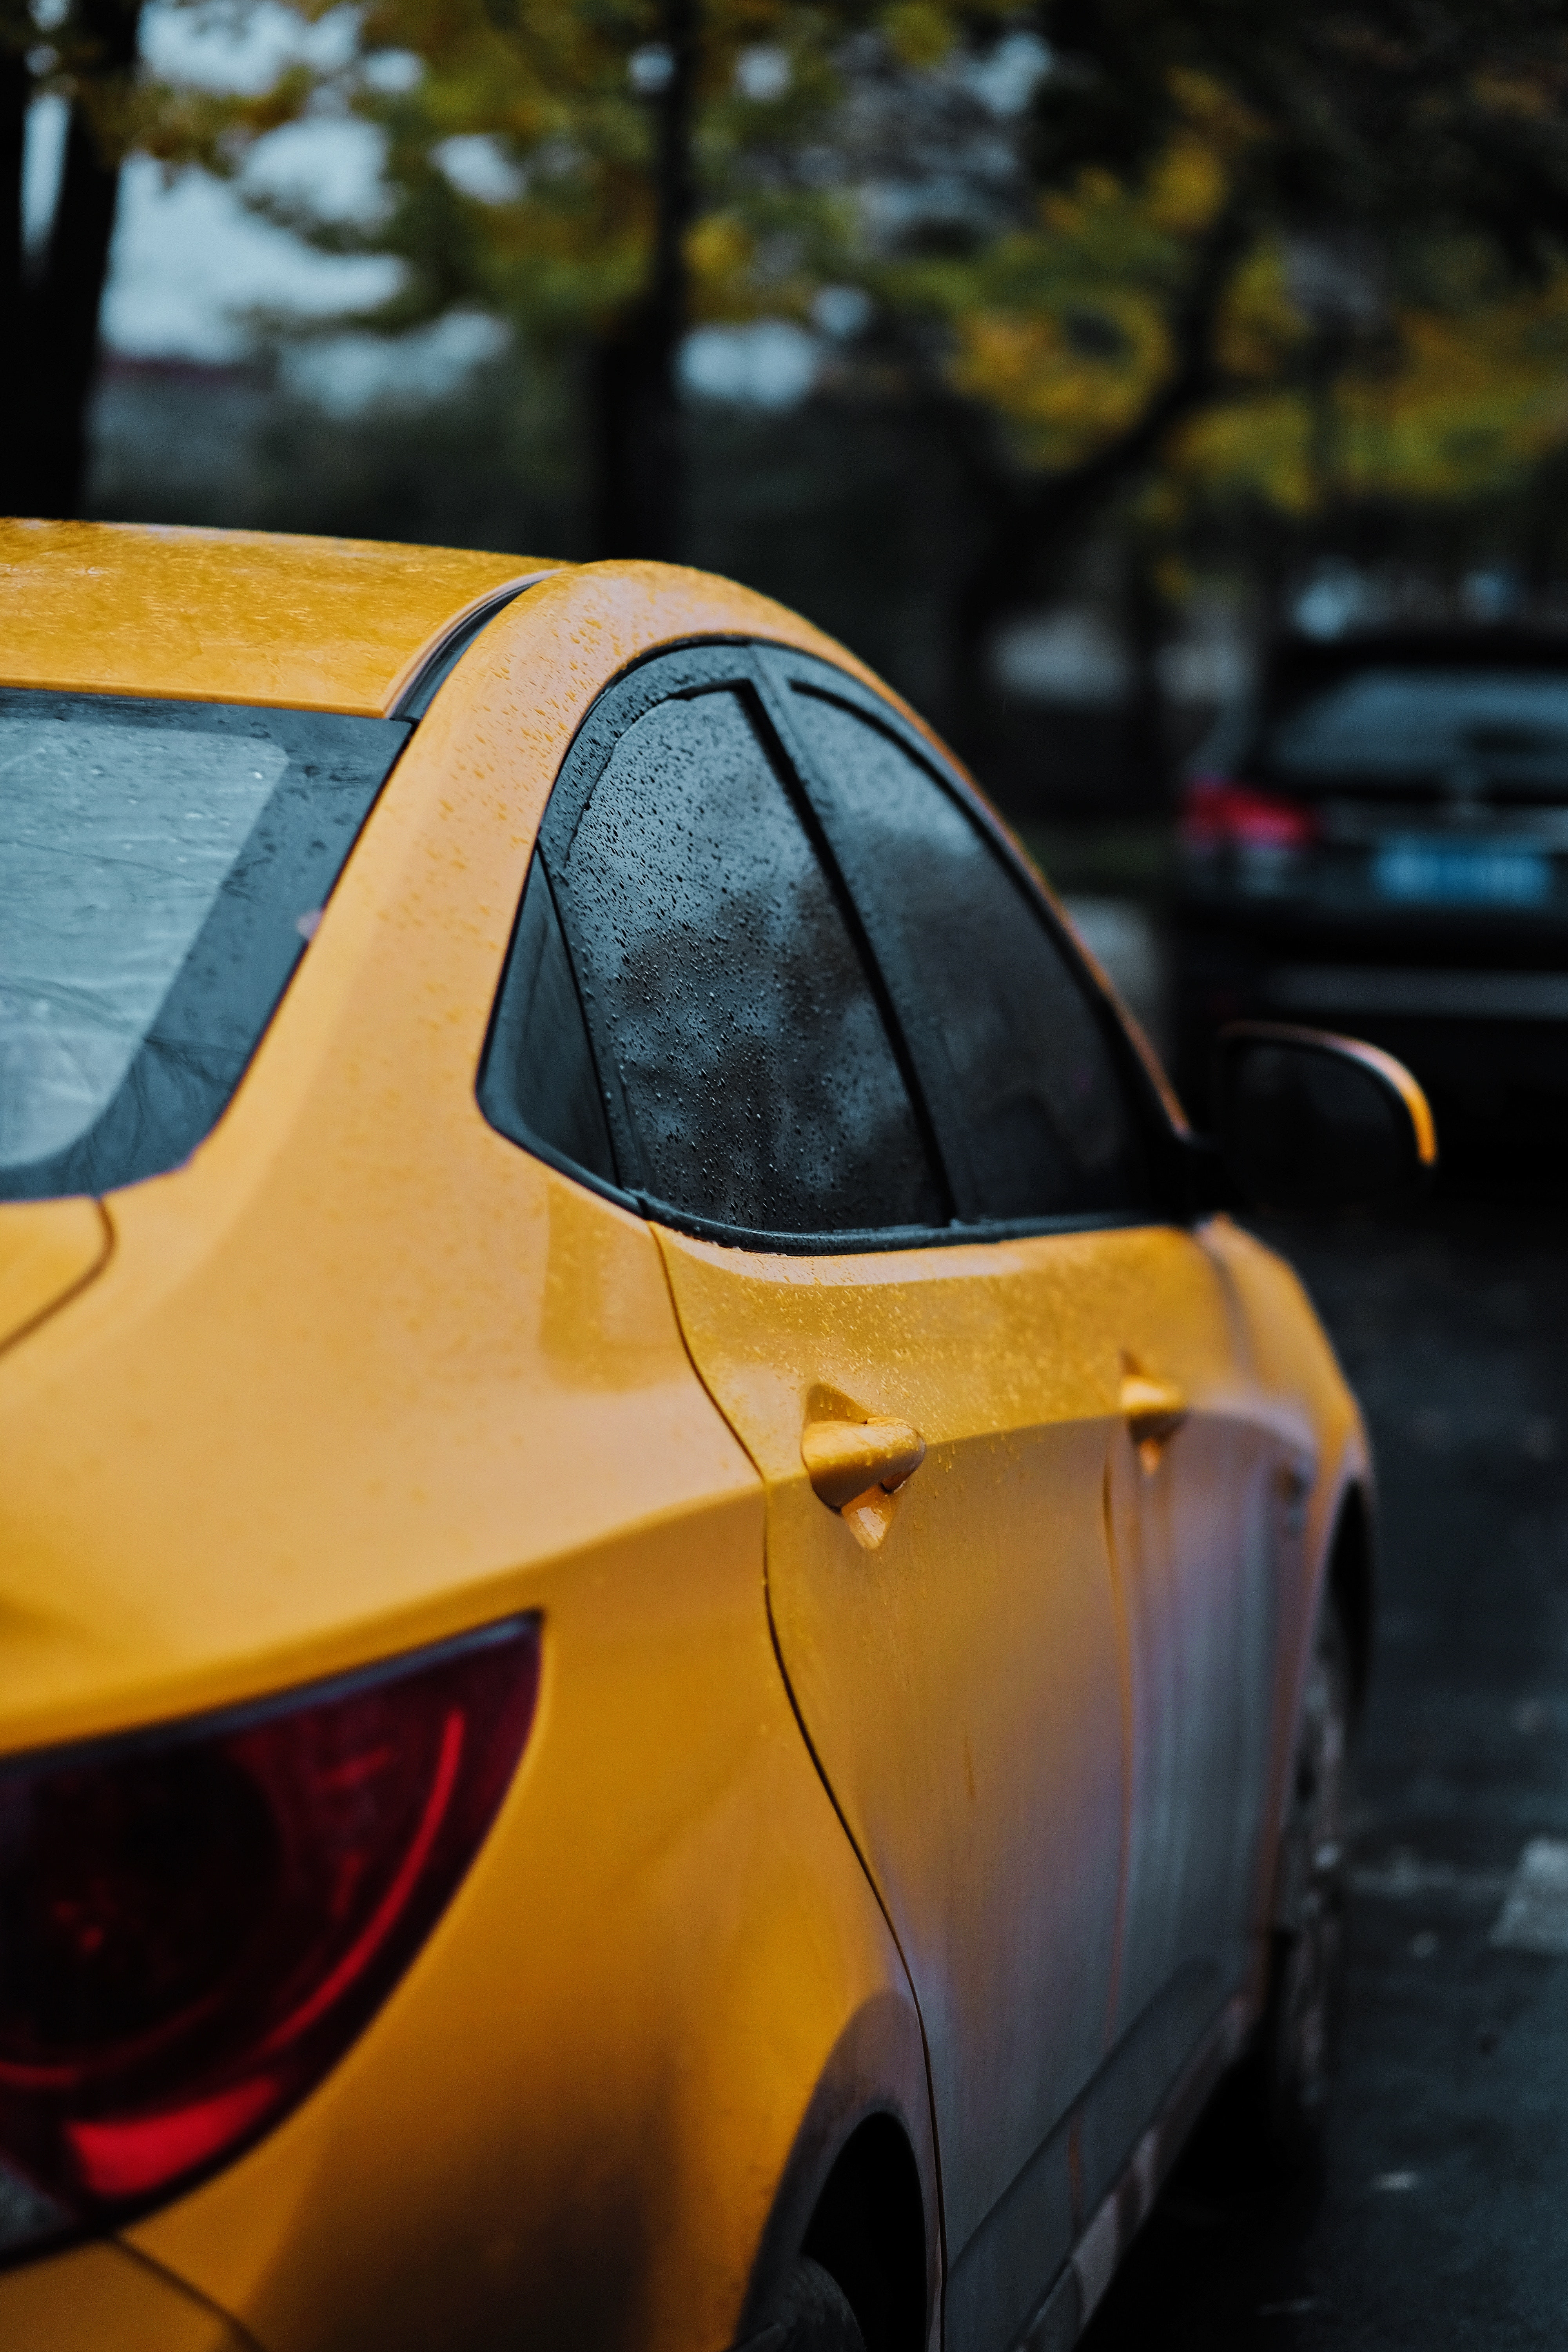 Closeup Photography of Yellow Car, Auto, Outdoors, Wheel, Vintage, HQ Photo